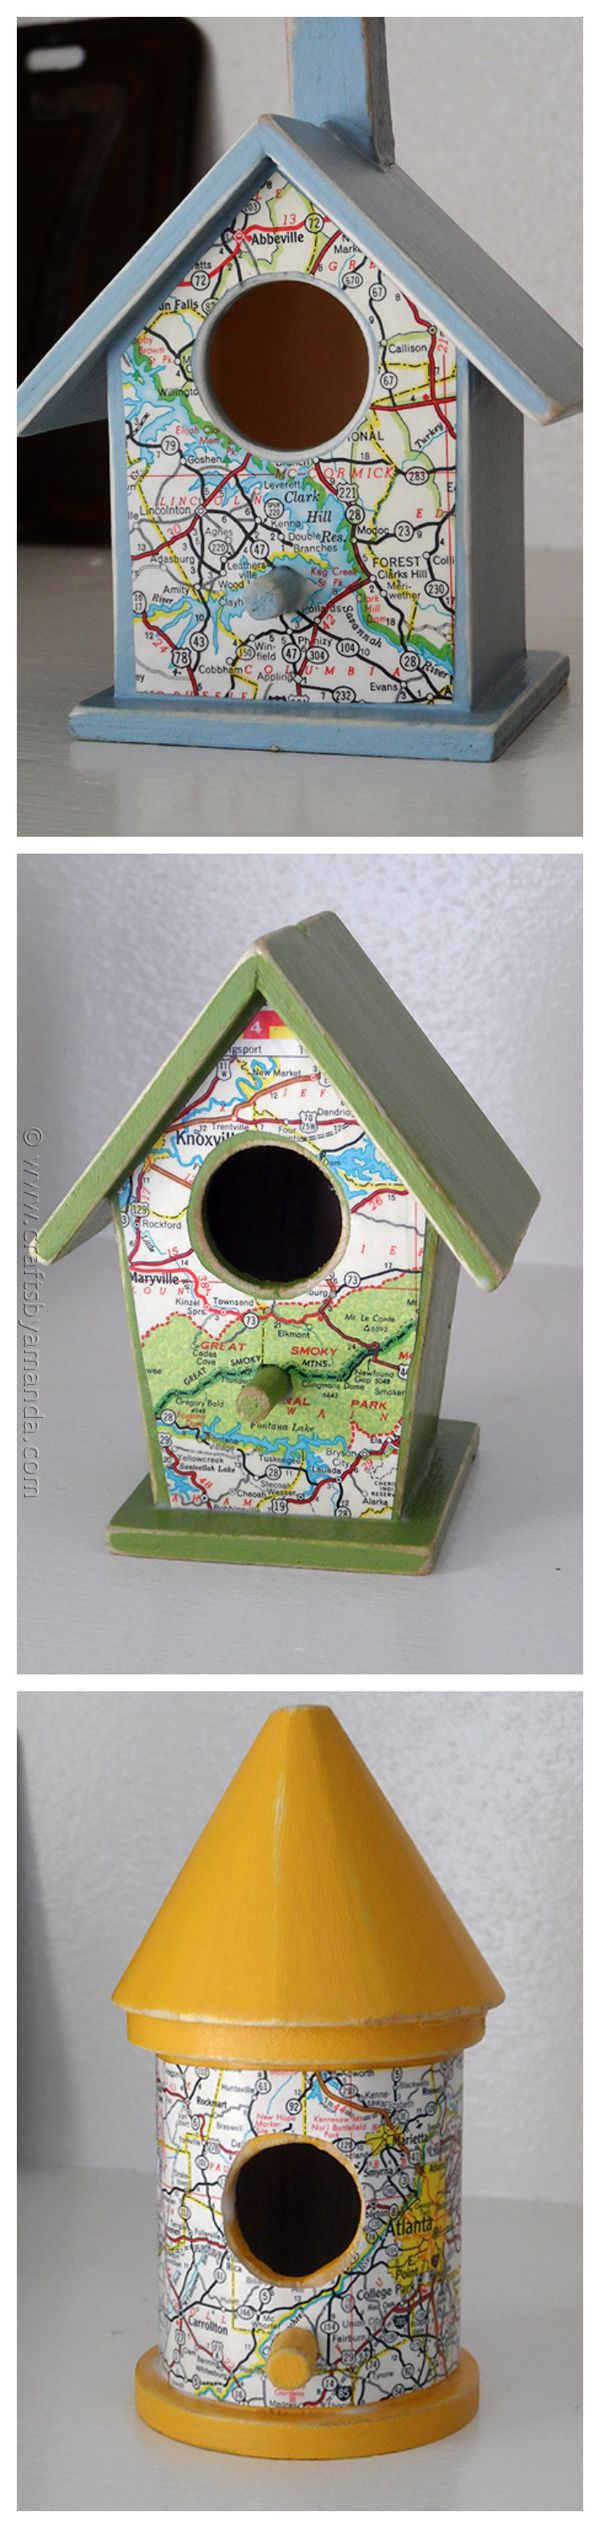 Road Map Birdhouses from CraftsbyAmanda.com @Amanda Snelson Formaro